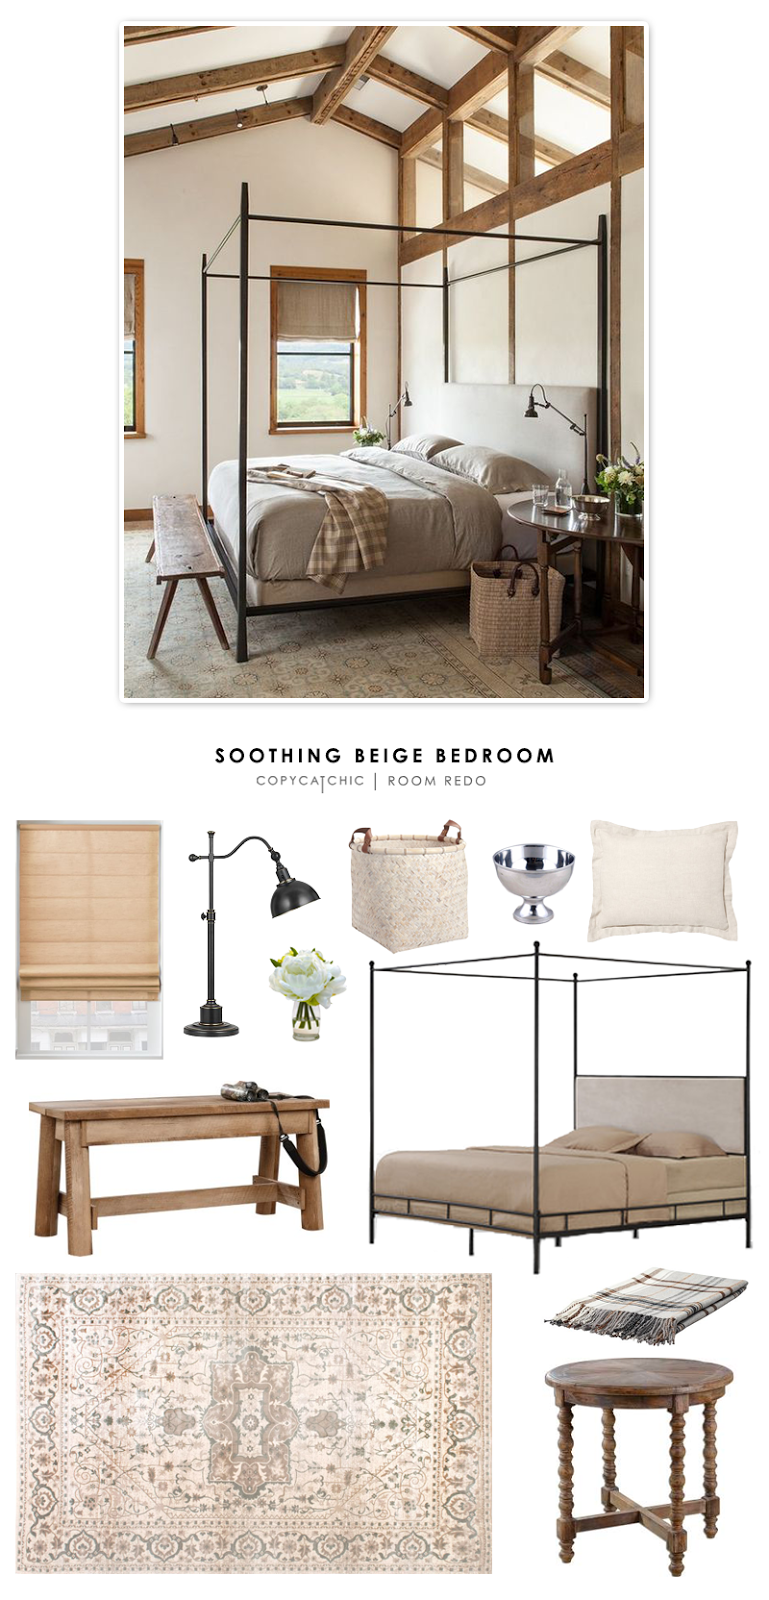 A Soothing Beige Bedroom featured by Emily Henderson and recreated by Copy Cat Chic for less.